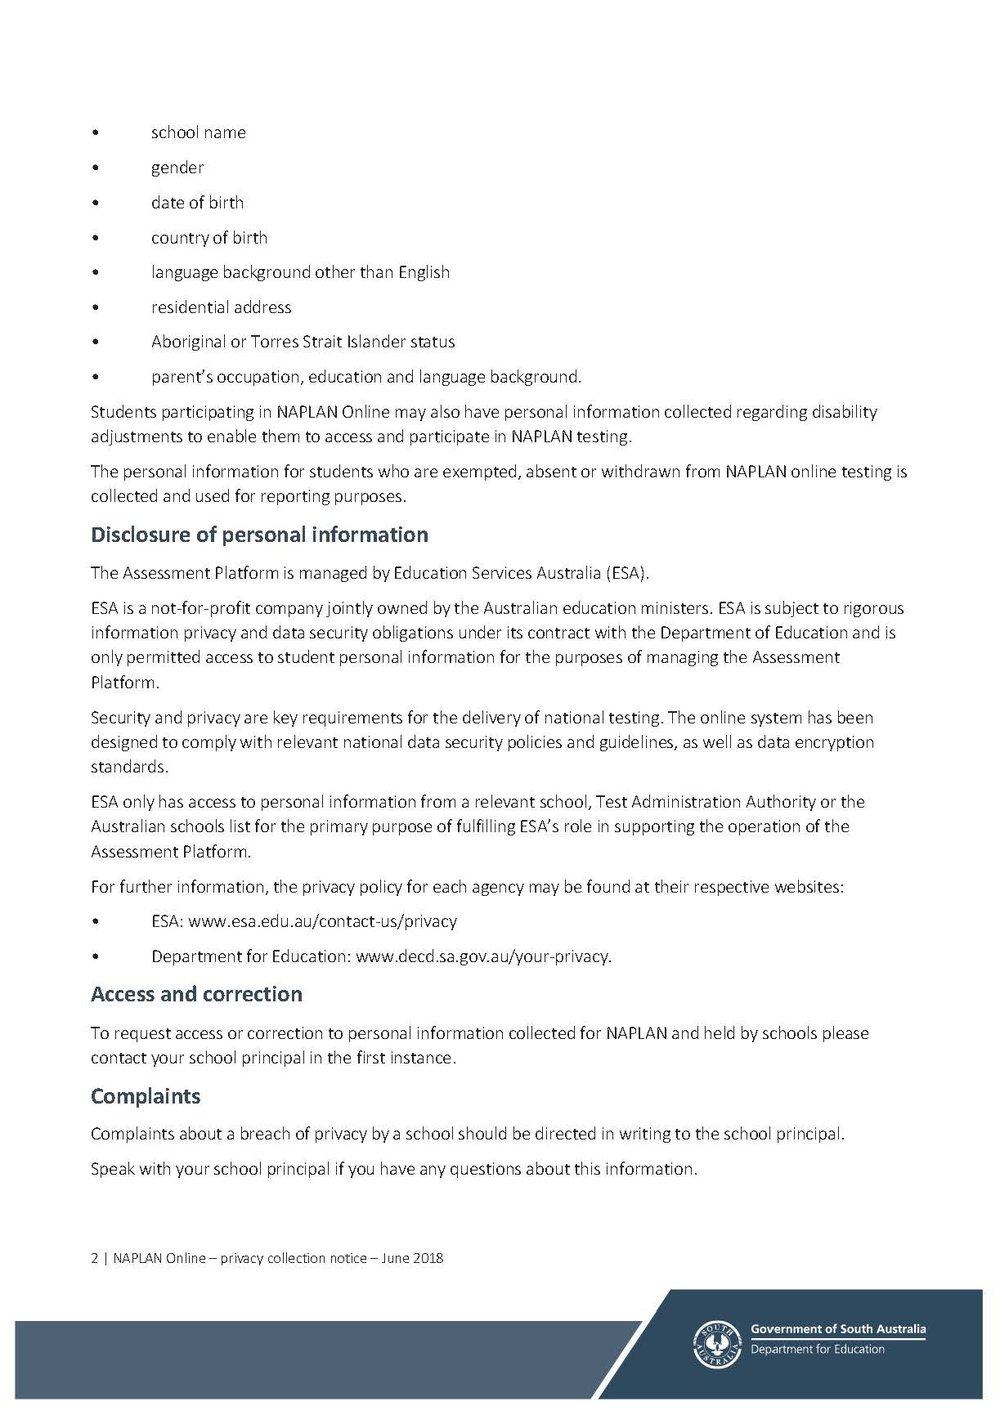 2019_naplan-online-privacy-collection-notice (003)_Page_2.jpg